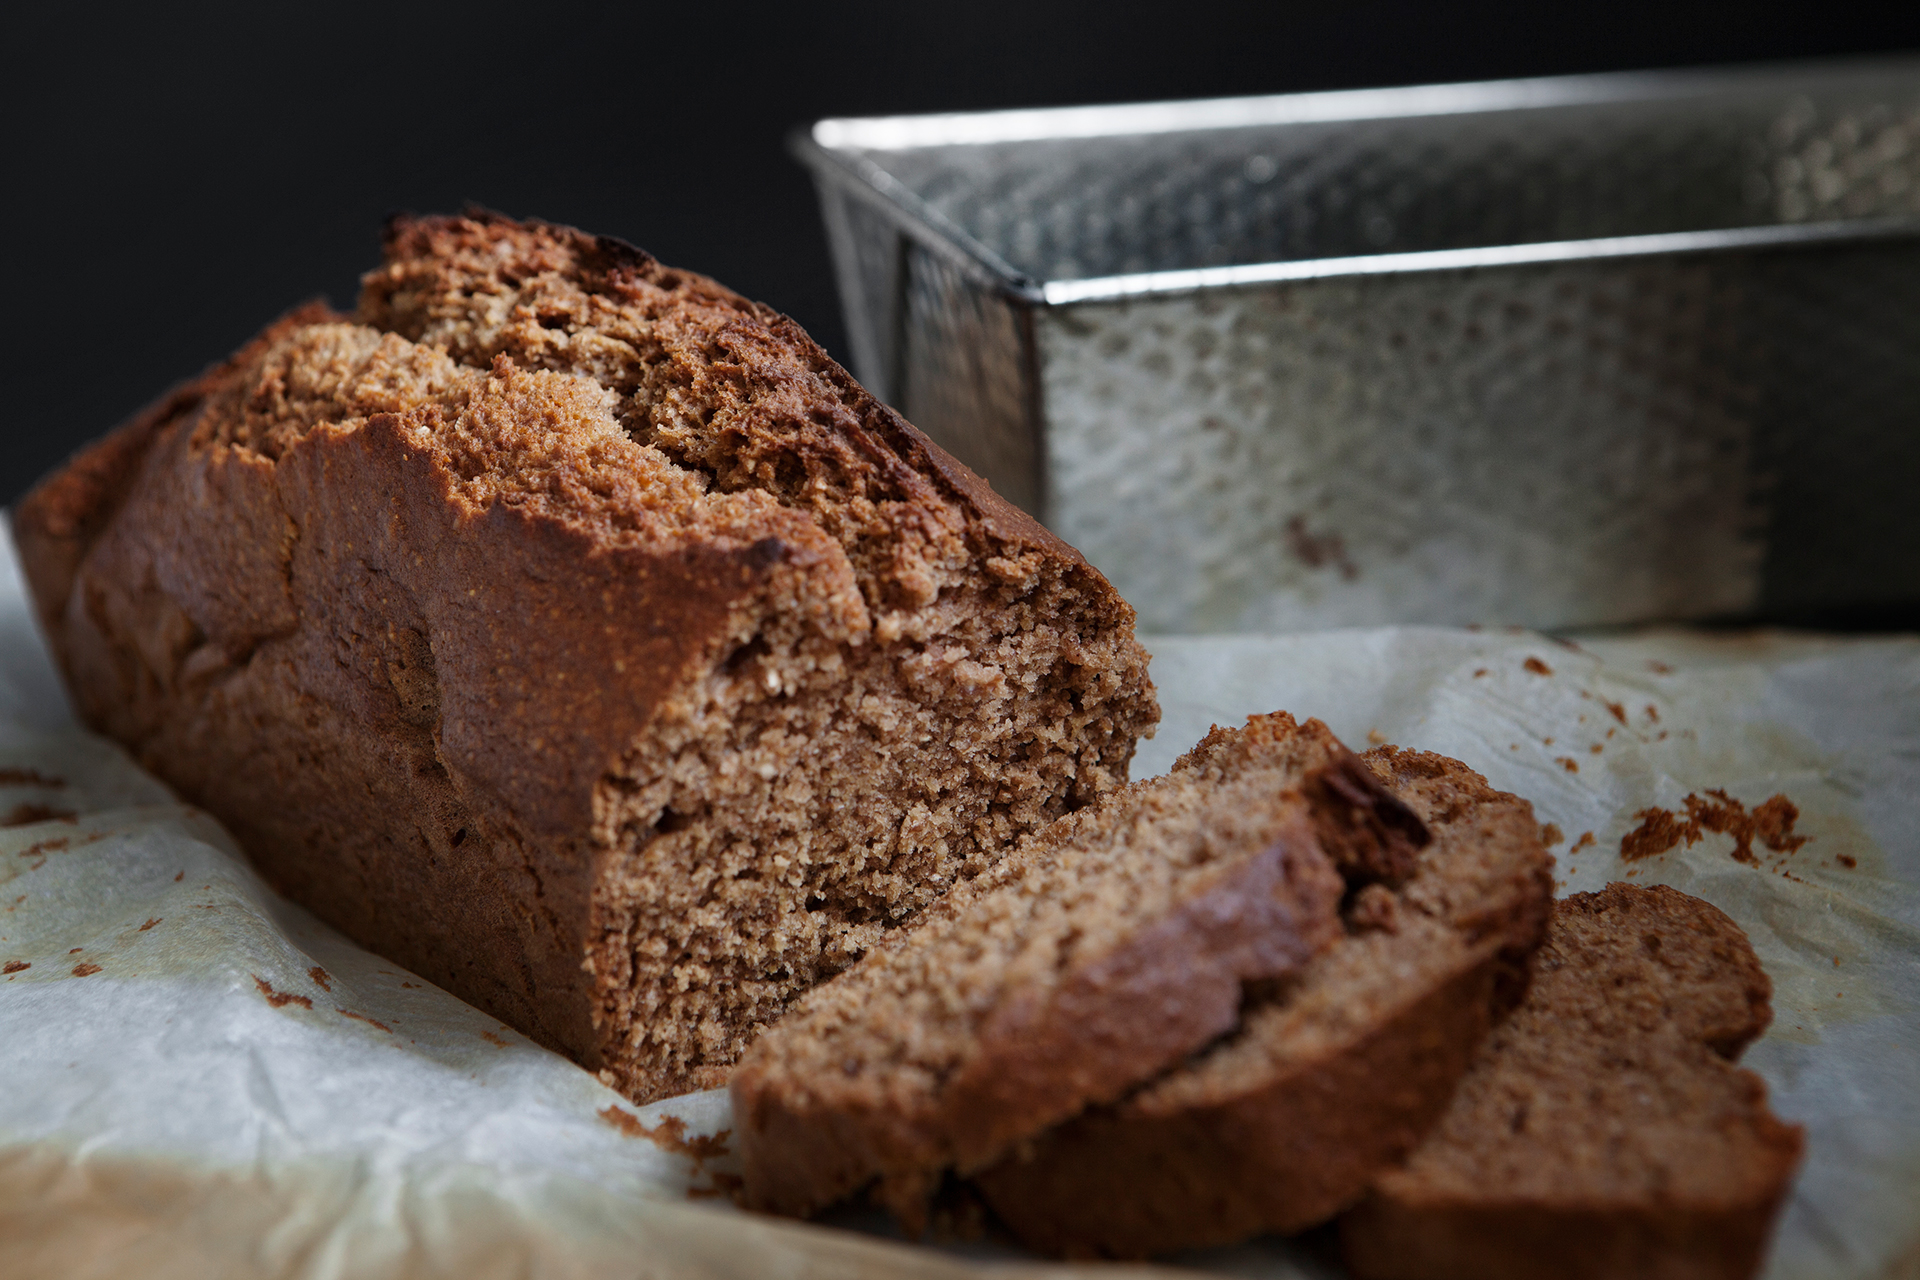 Recipe: Spice Loaf with Homemade Apple Sauce